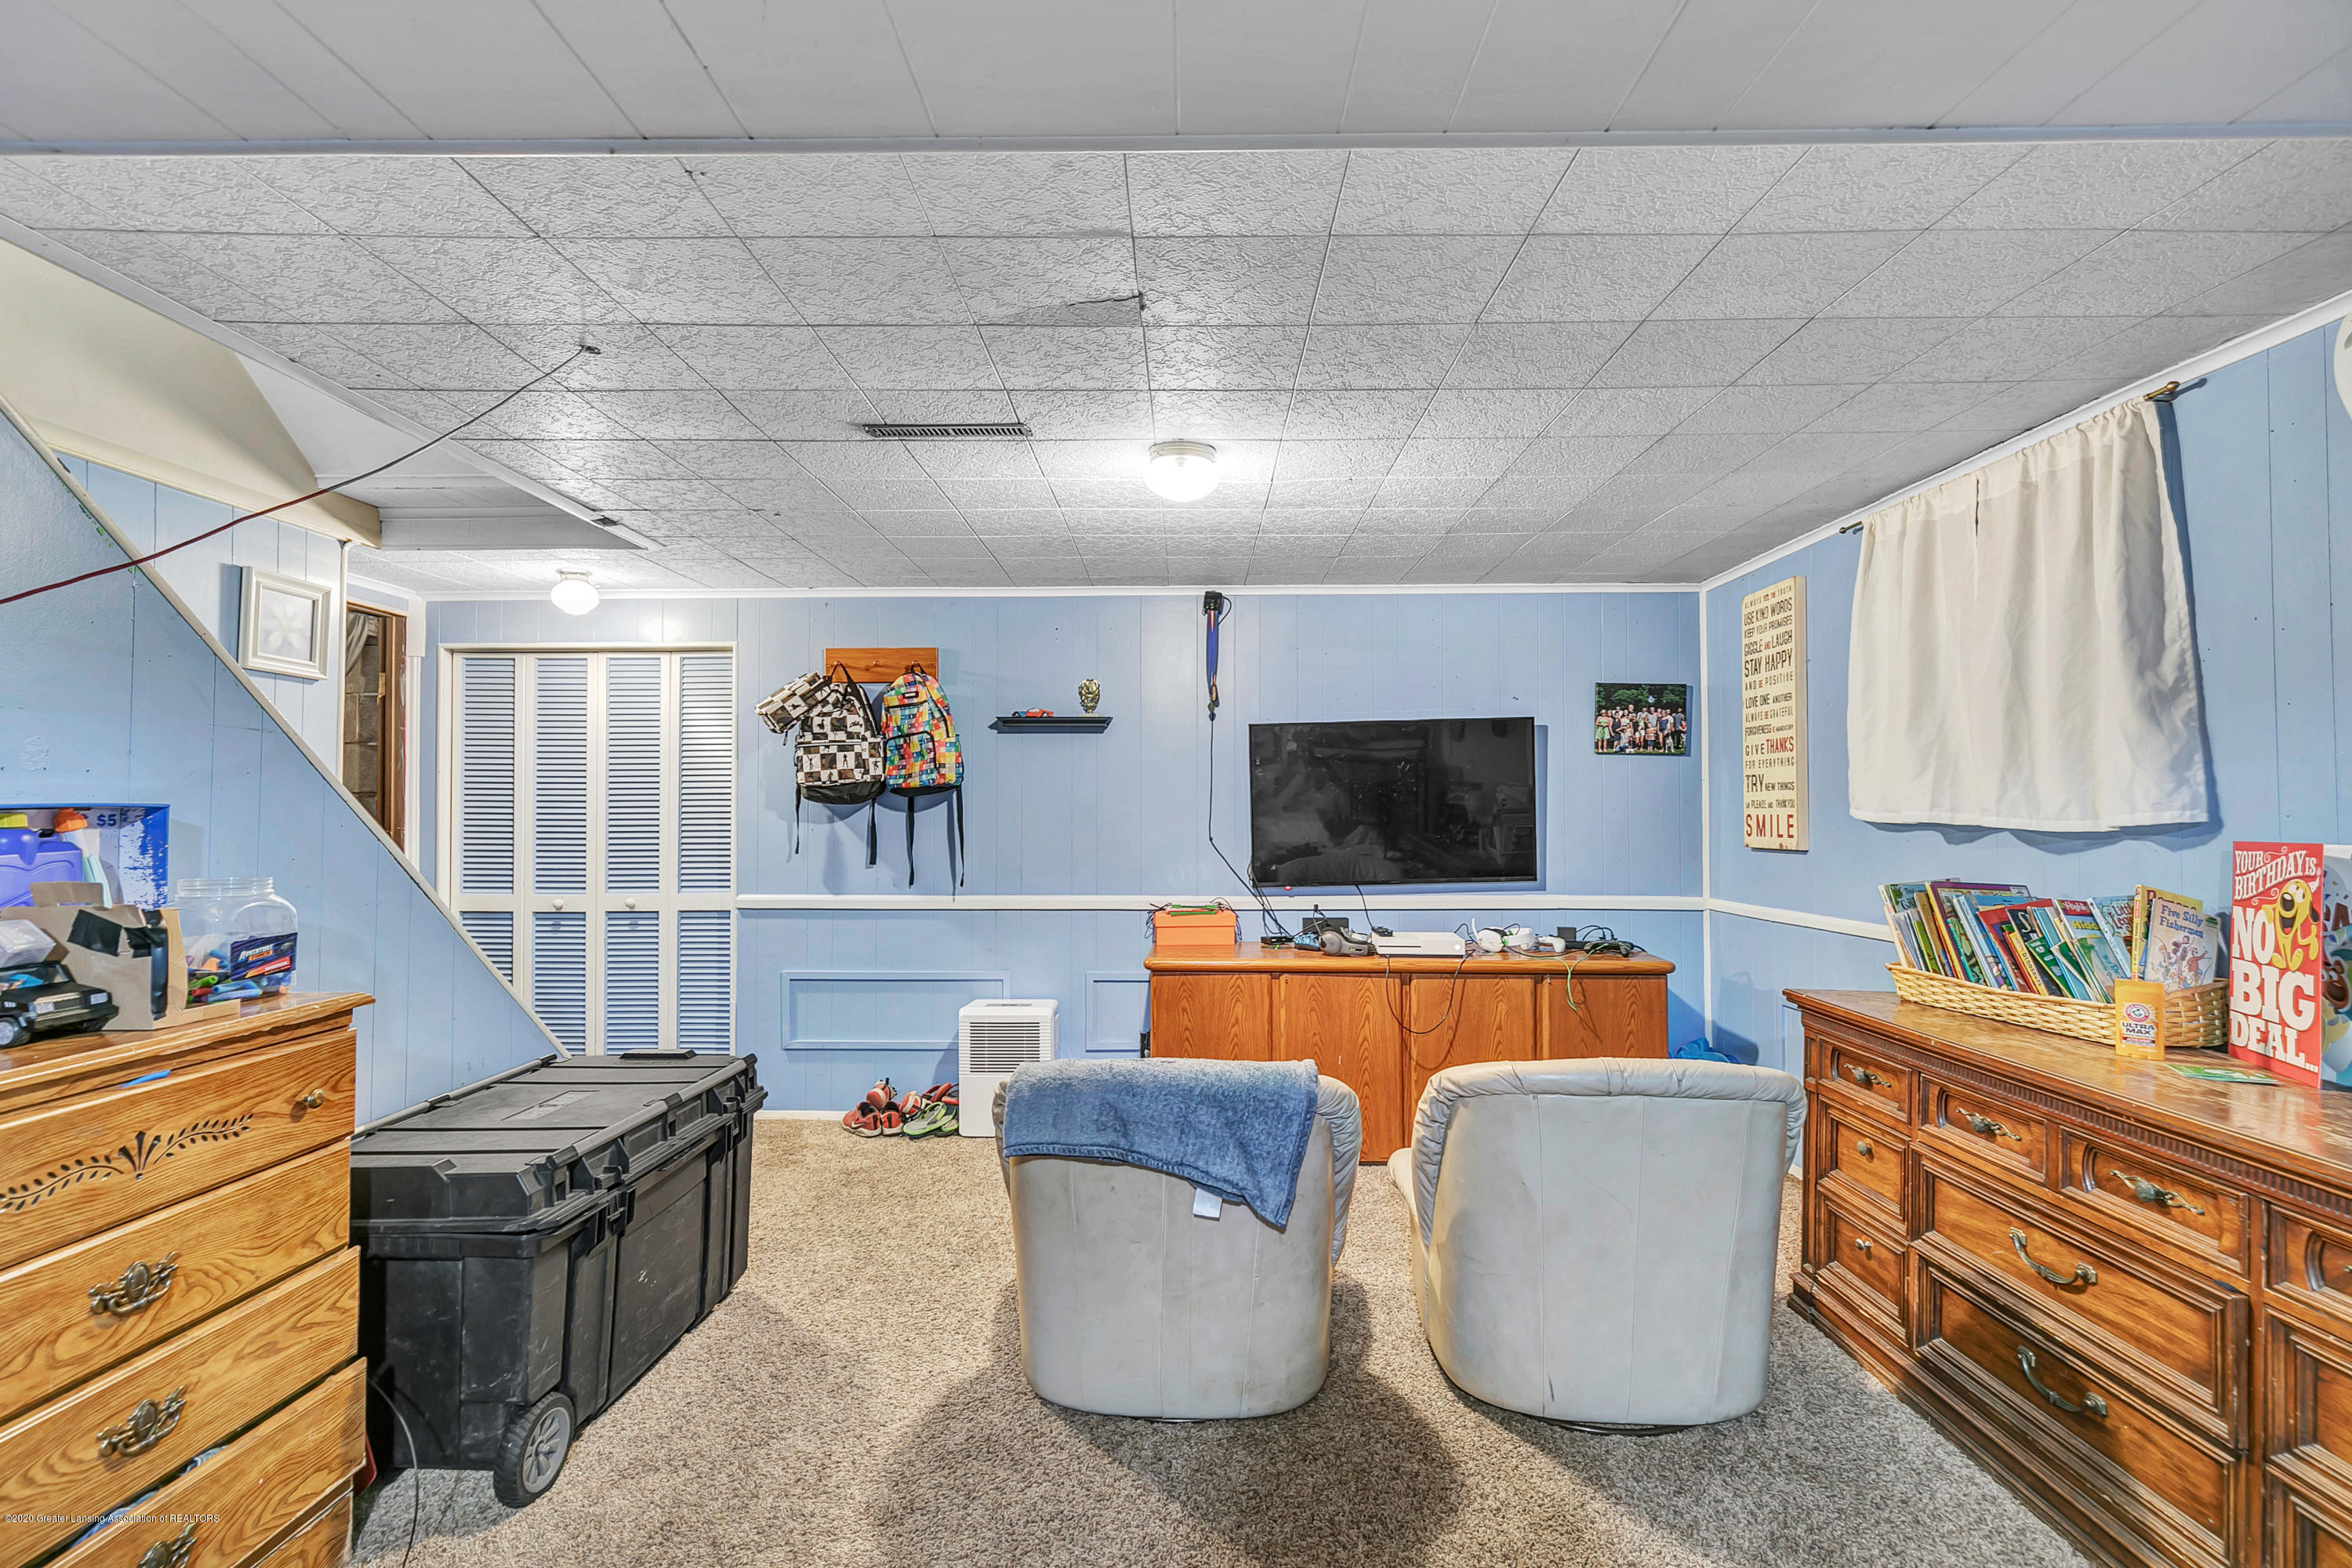 2844 S Deerfield Ave - 9I3A2592 - 21